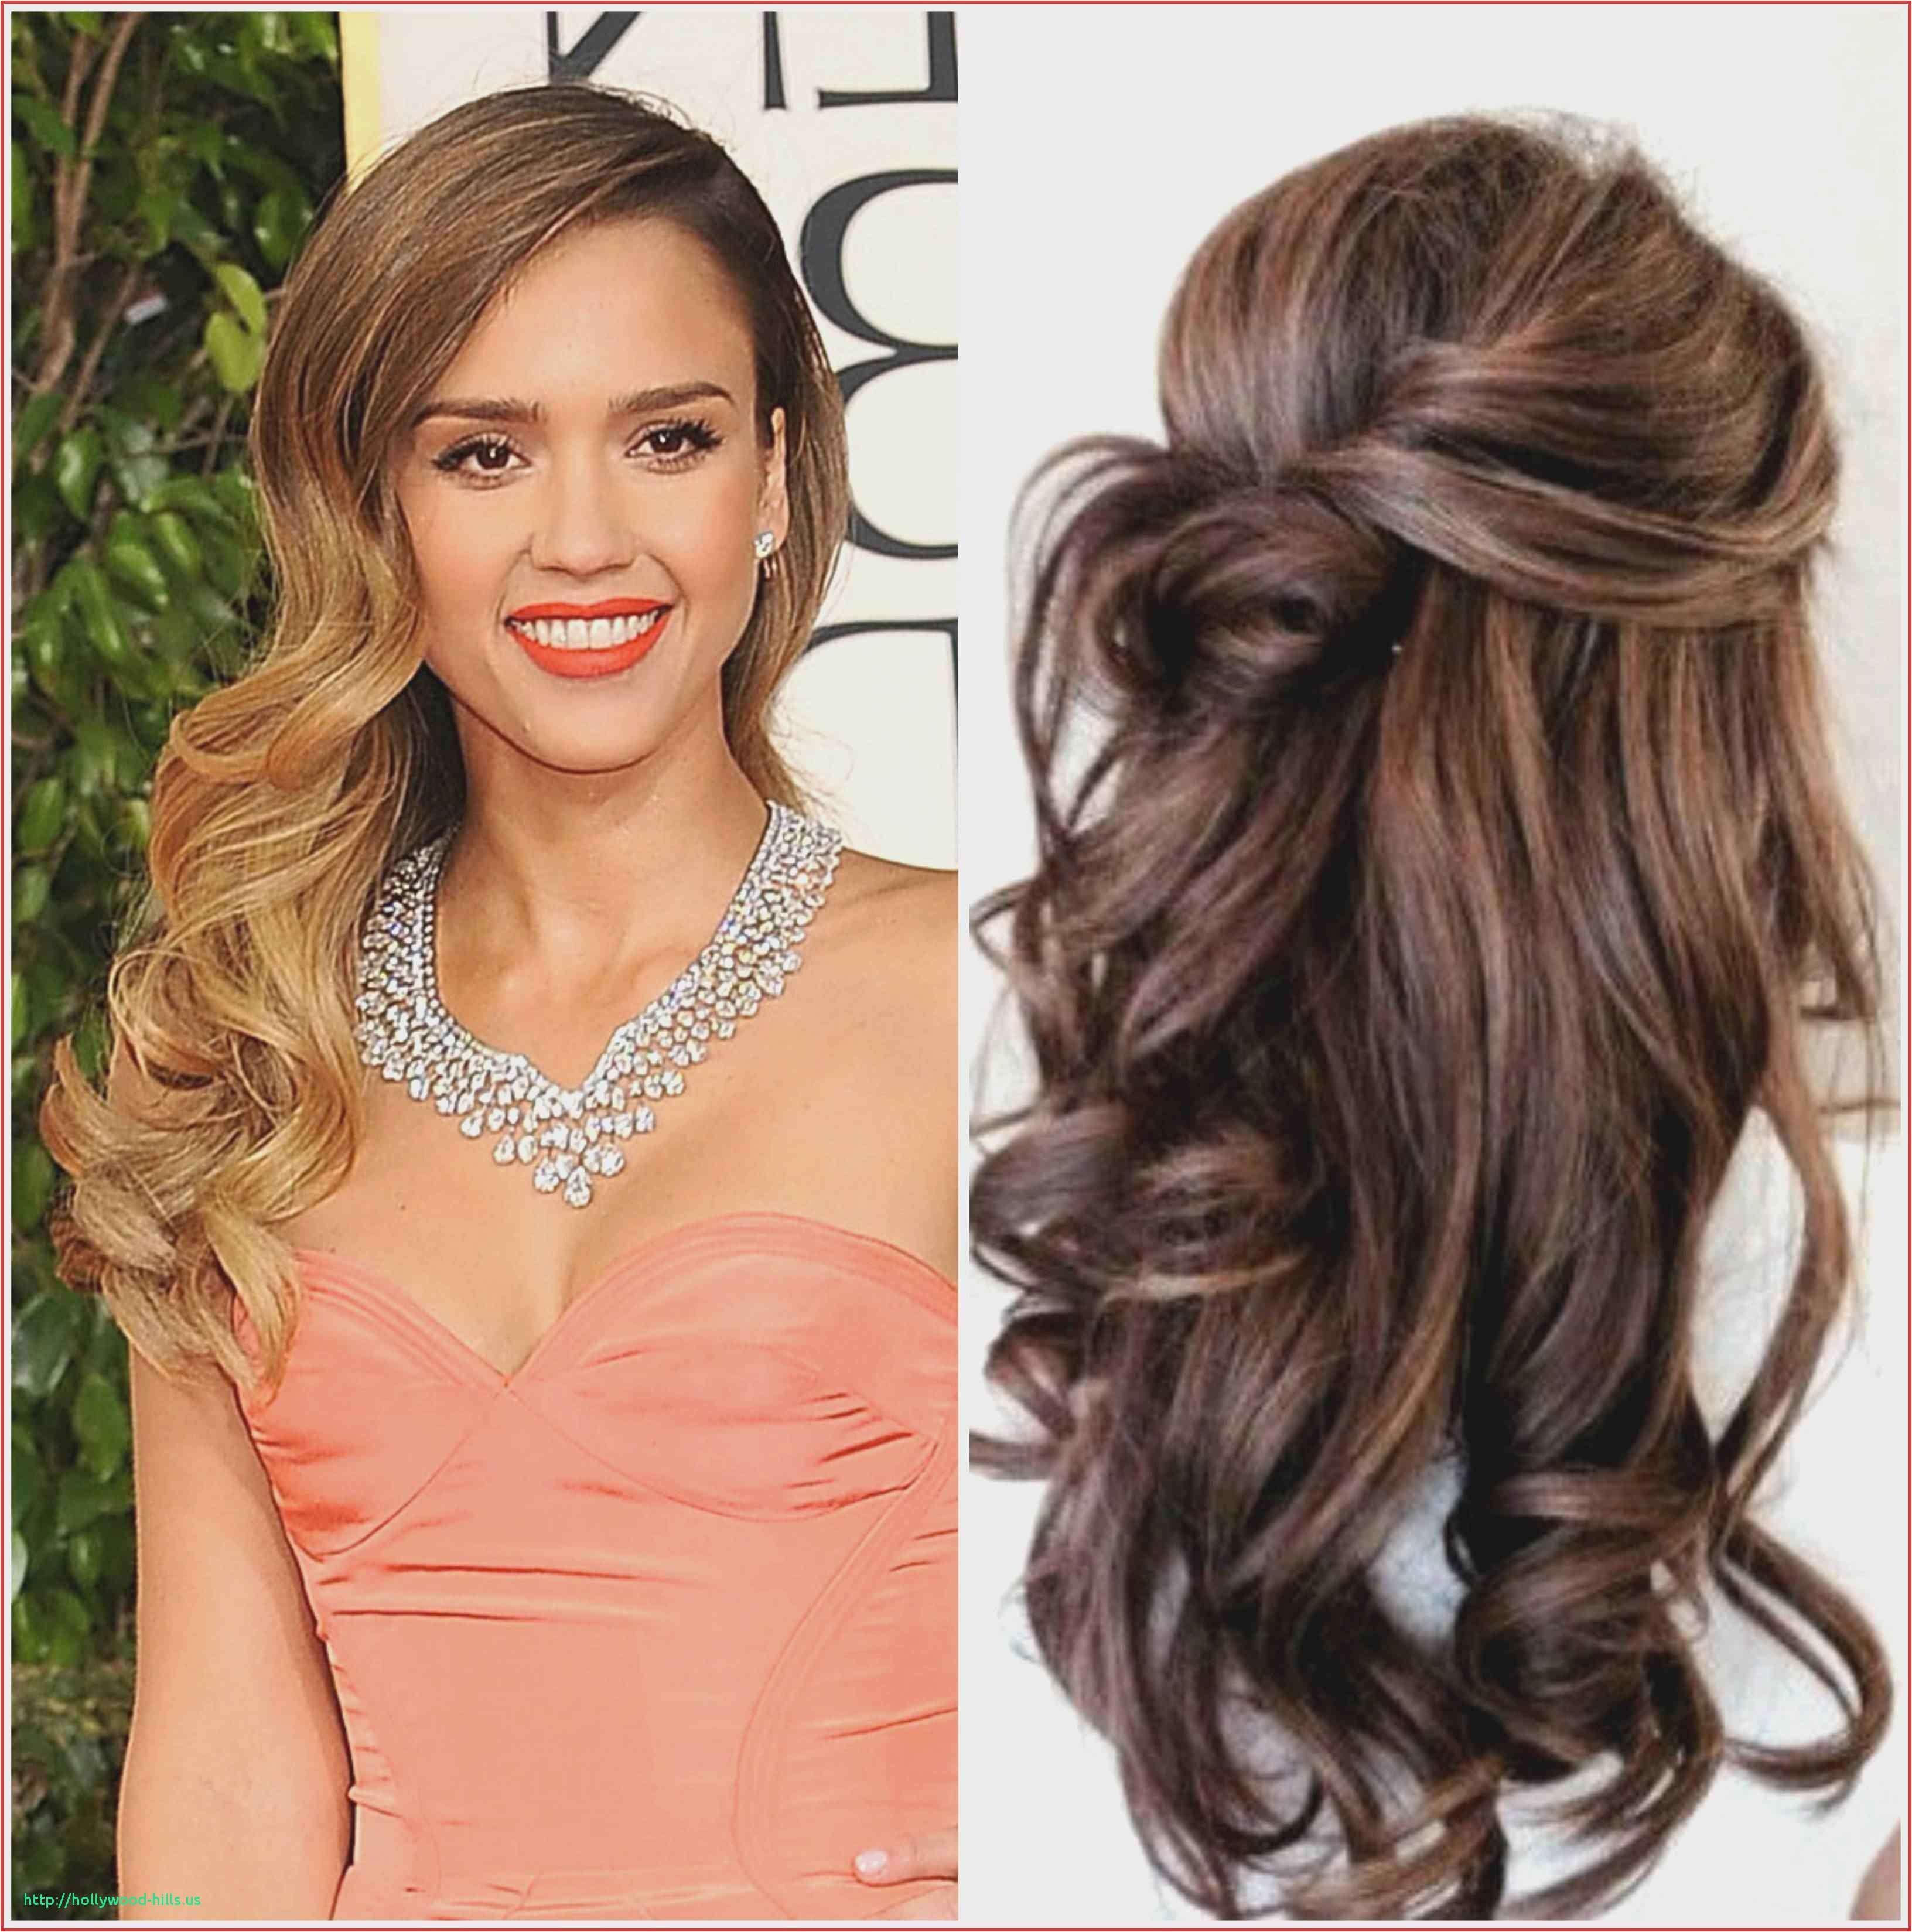 Haircuts Games for Girls s New Haircut for Girl Long Hair Inspirational New Hairstyles for